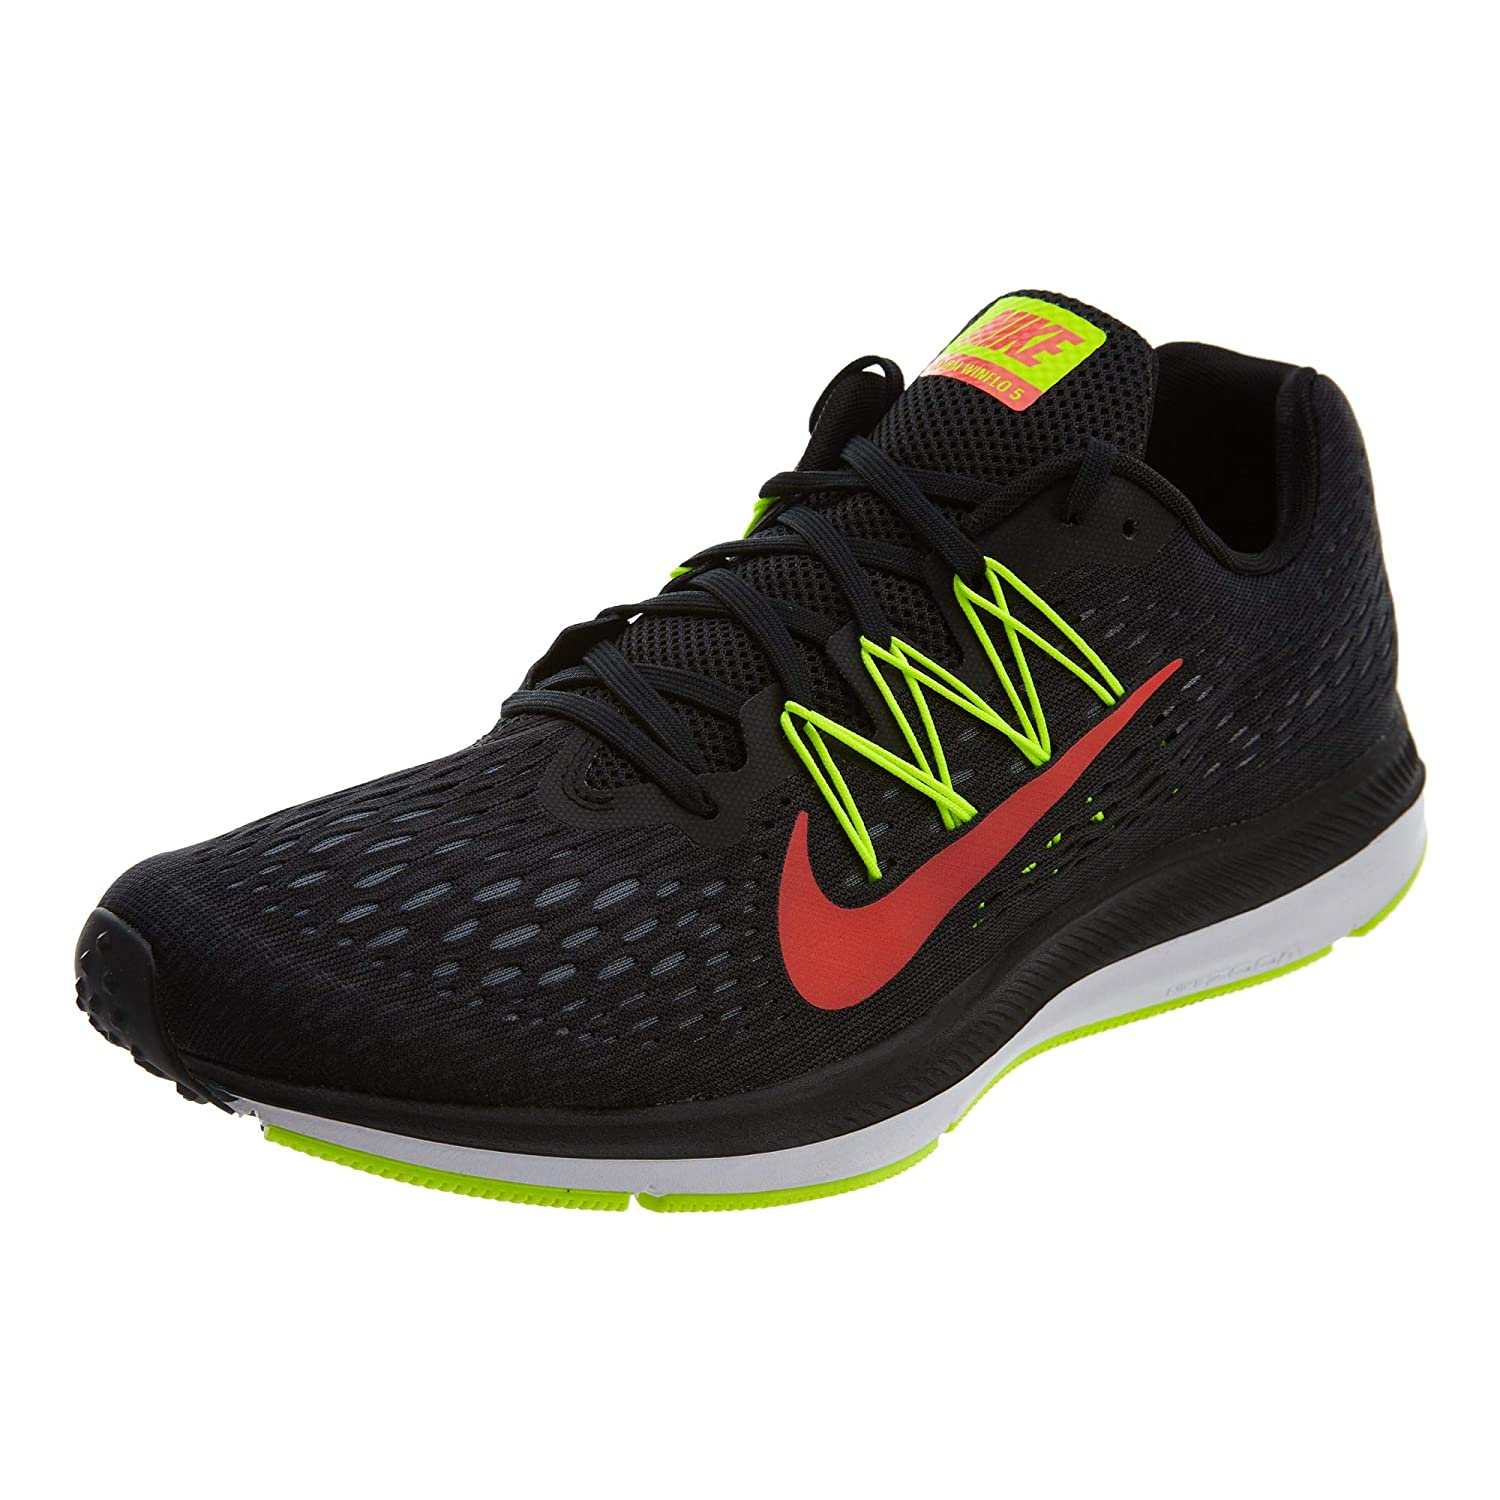 lowest price b4182 d1690 Amazon.com   Nike Men s Zoom Winflo Running Shoe   Running